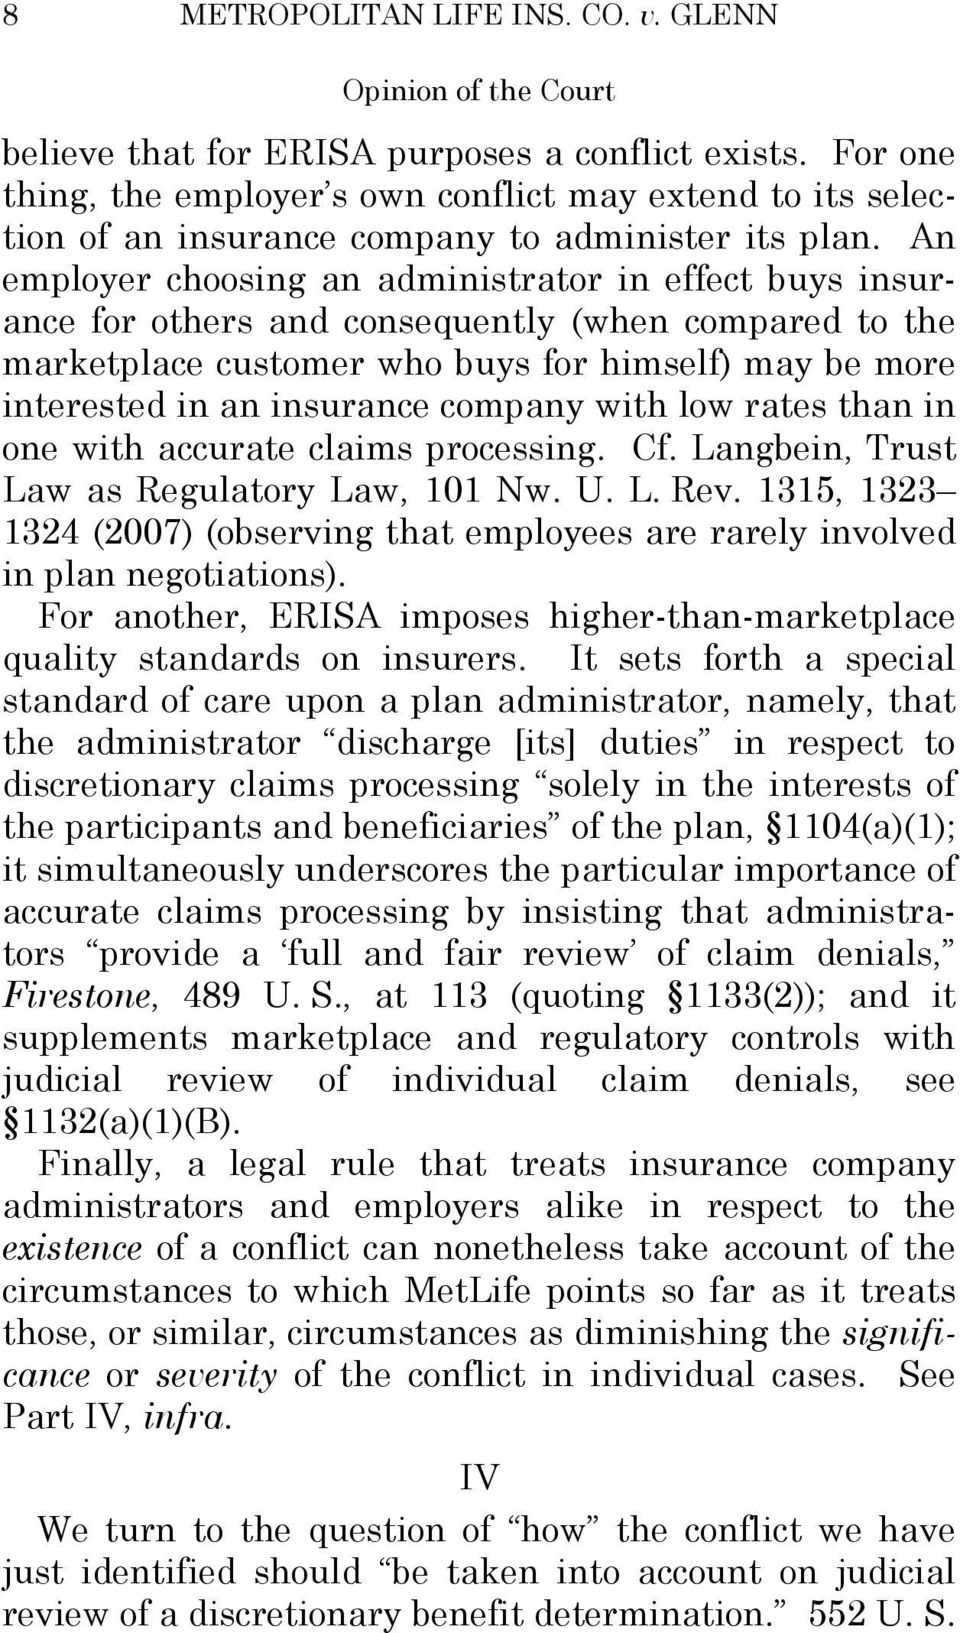 An employer choosing an administrator in effect buys insurance for others and consequently (when compared to the marketplace customer who buys for himself) may be more interested in an insurance